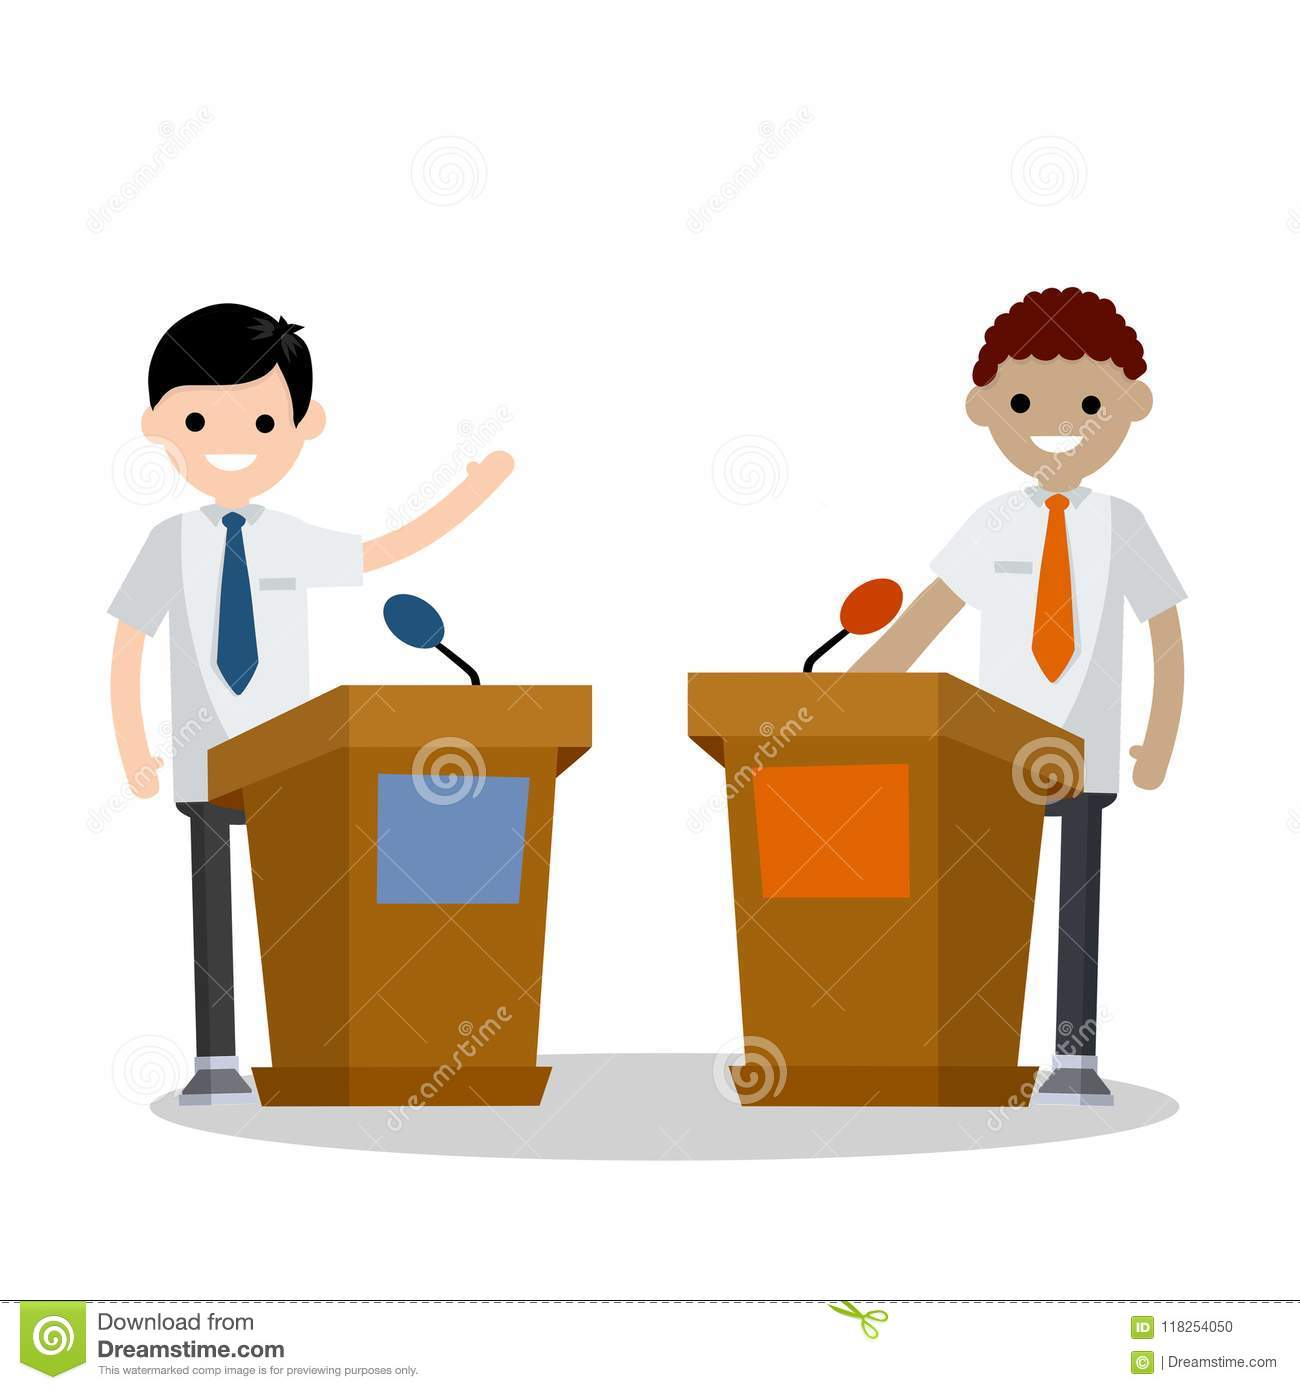 37169fc4c96 Cartoon Flat Illustration - Two Guys In The Stands Discussion. Stock ...